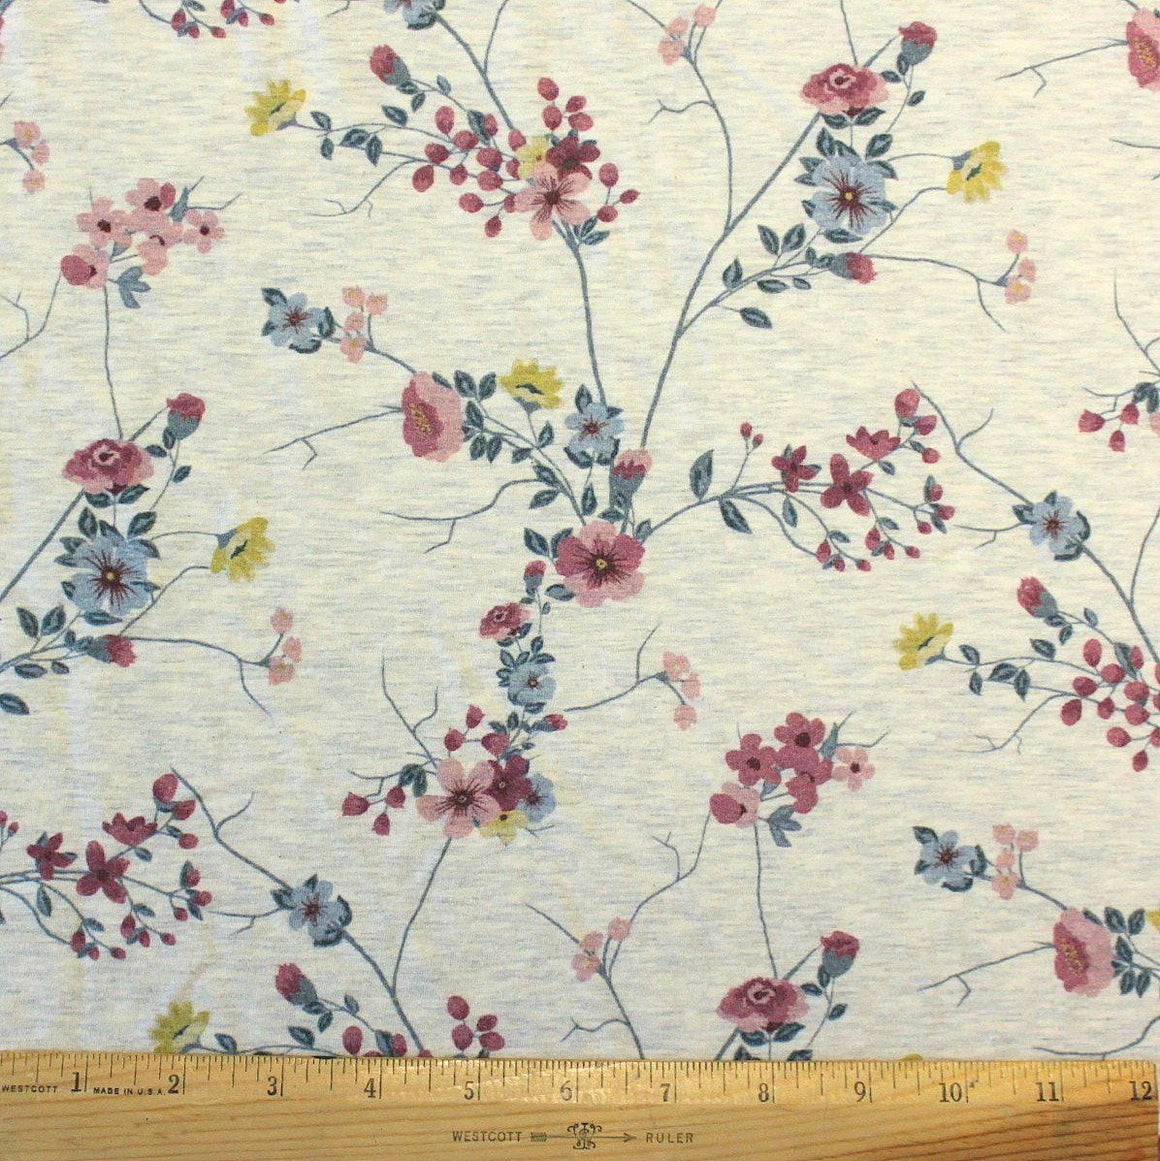 Teal Mauve and Yellow Twig Floral on Oatmeal 4 Way Stretch Jersey Knit Fabric With Spandex, 1 Yard